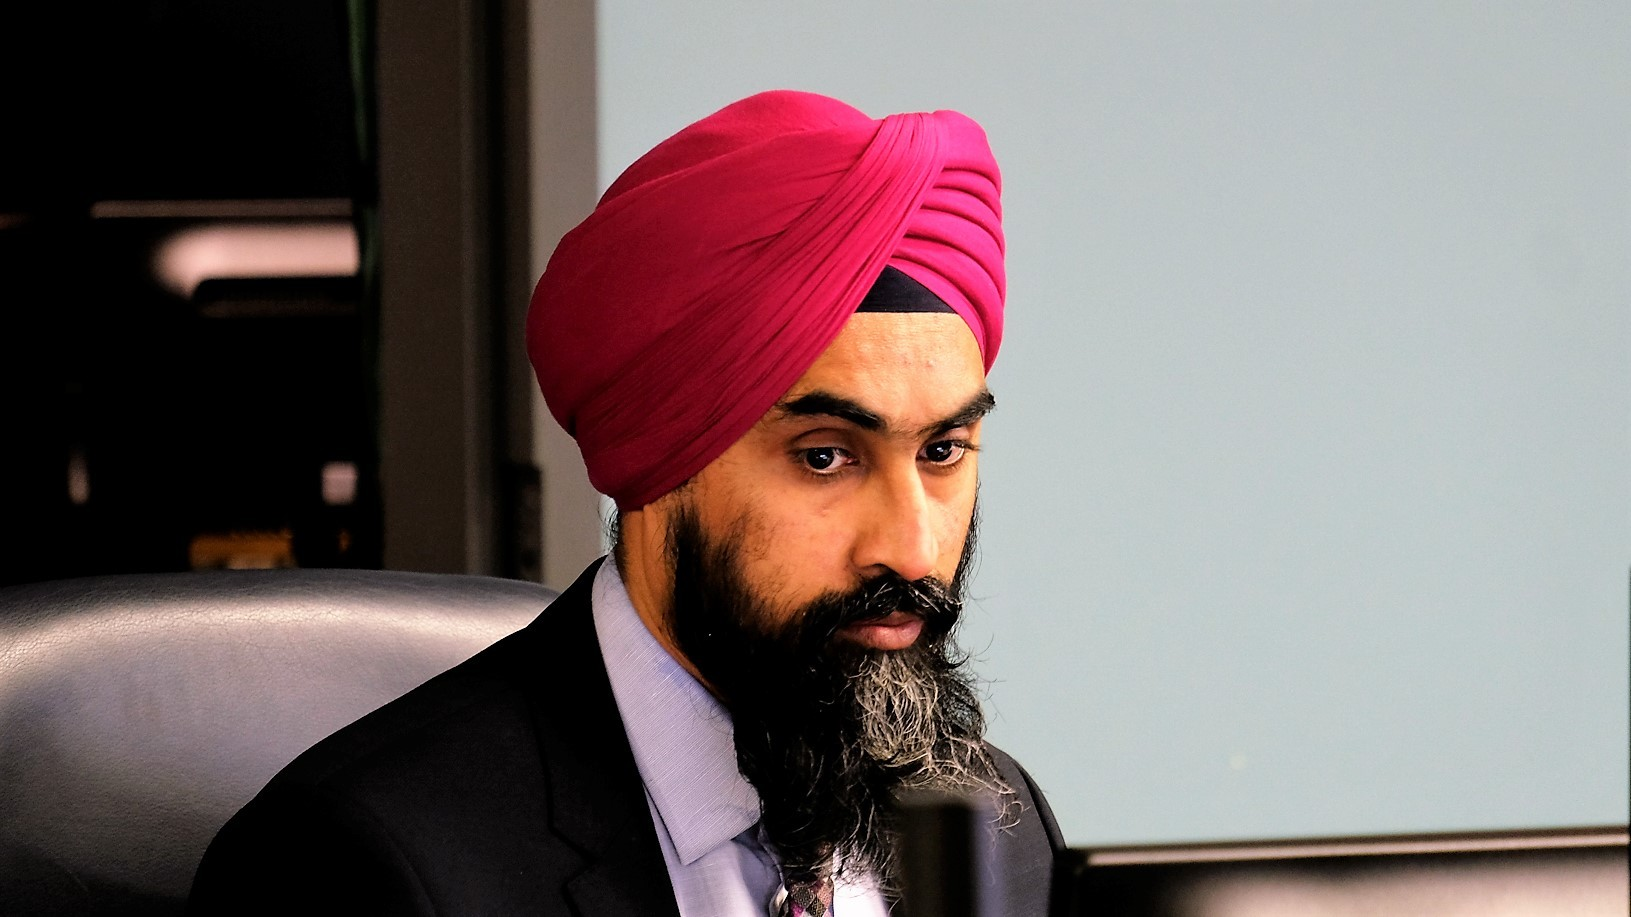 Criminal investigation being conducted as Gurpreet Dhillon & City of Brampton sued for $2M by woman alleging sexual assault in Turkey